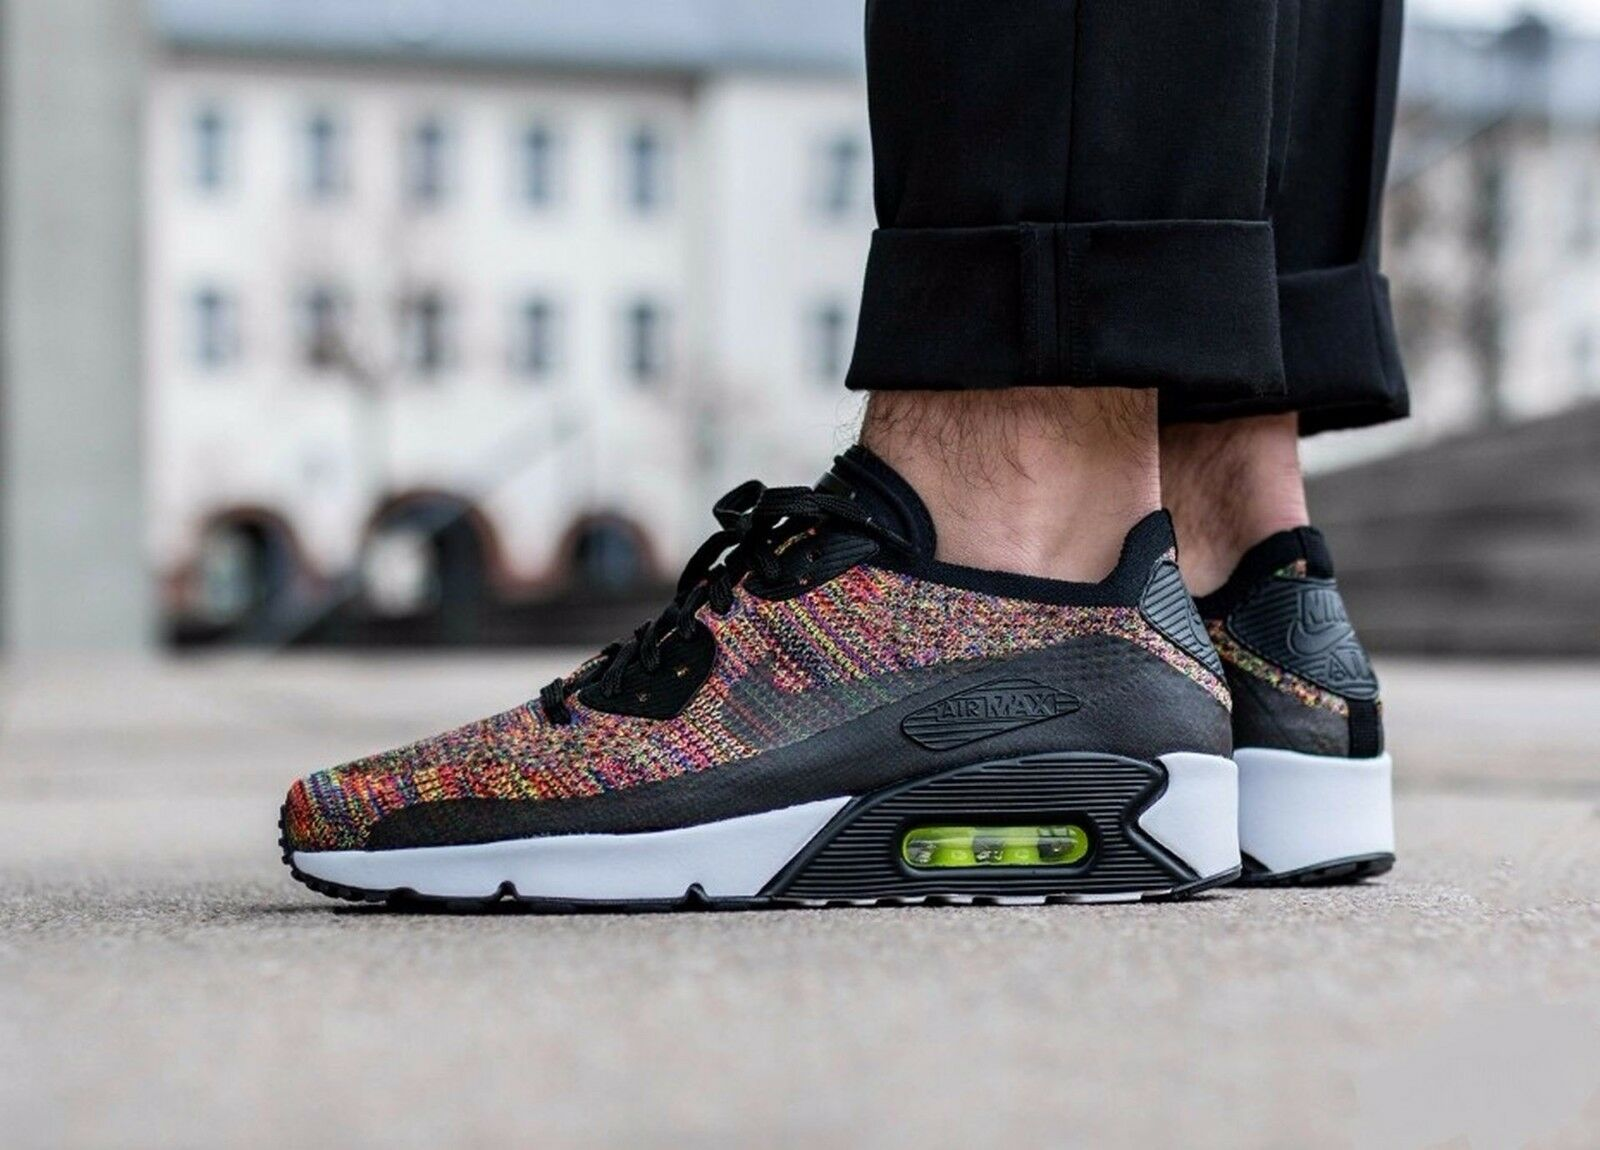 NIKE AIR MAX 90 ULTRA 2.0 FLYKNIT 875943-002 MENS Price reduction New shoes for men and women, limited time discount